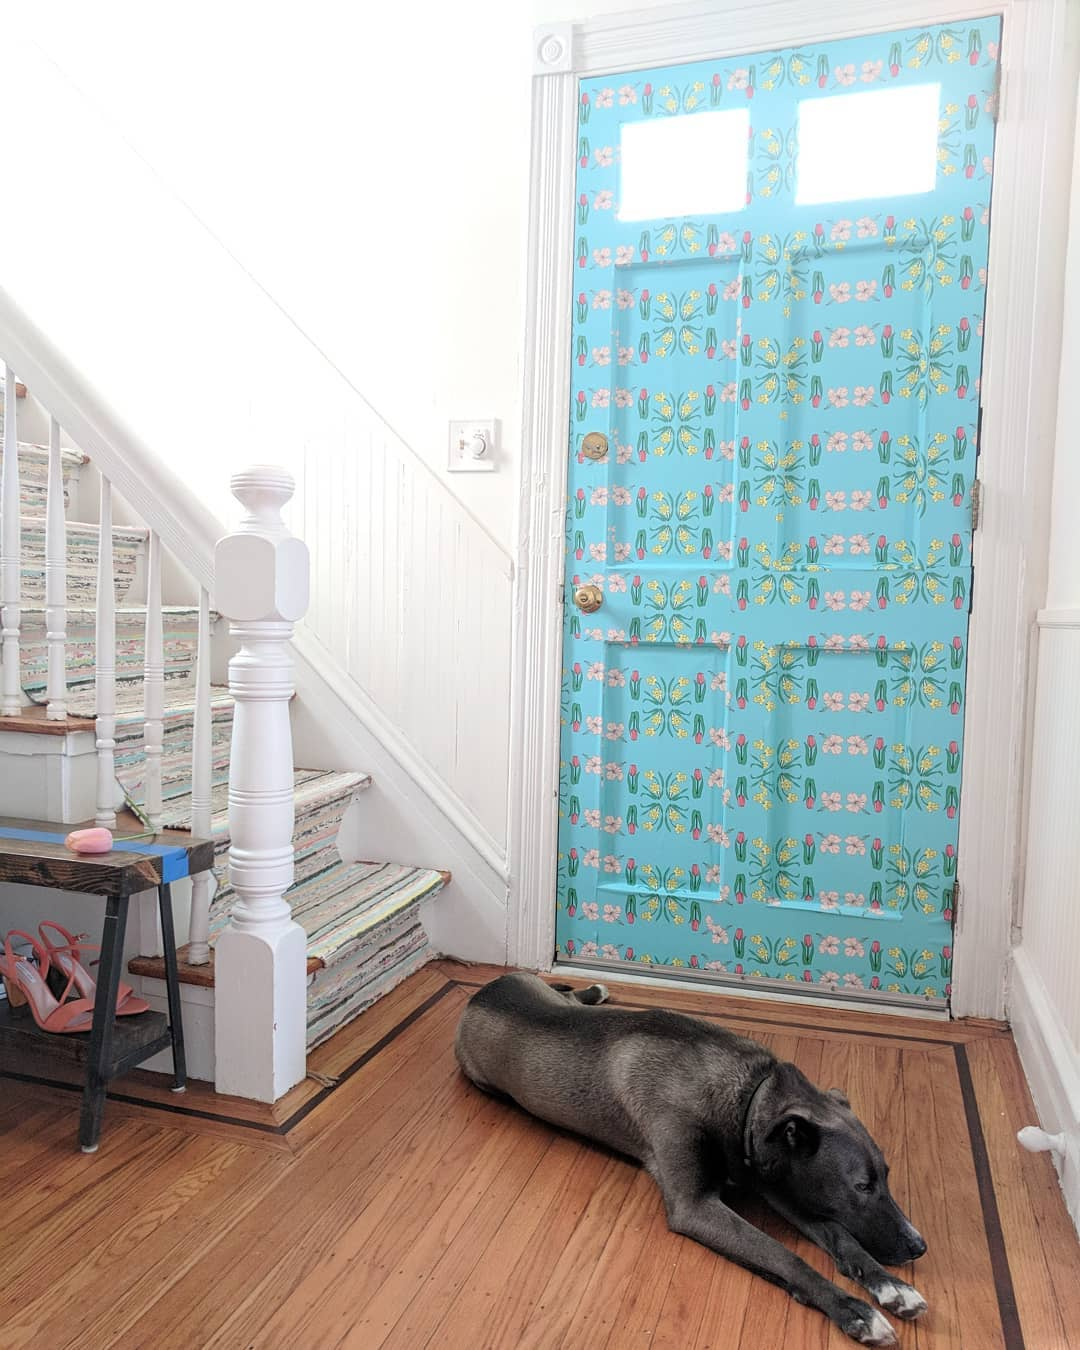 4 One Room Challenge Makeovers to Inspire Your Next Home Dec Project | Spoonflower Blog